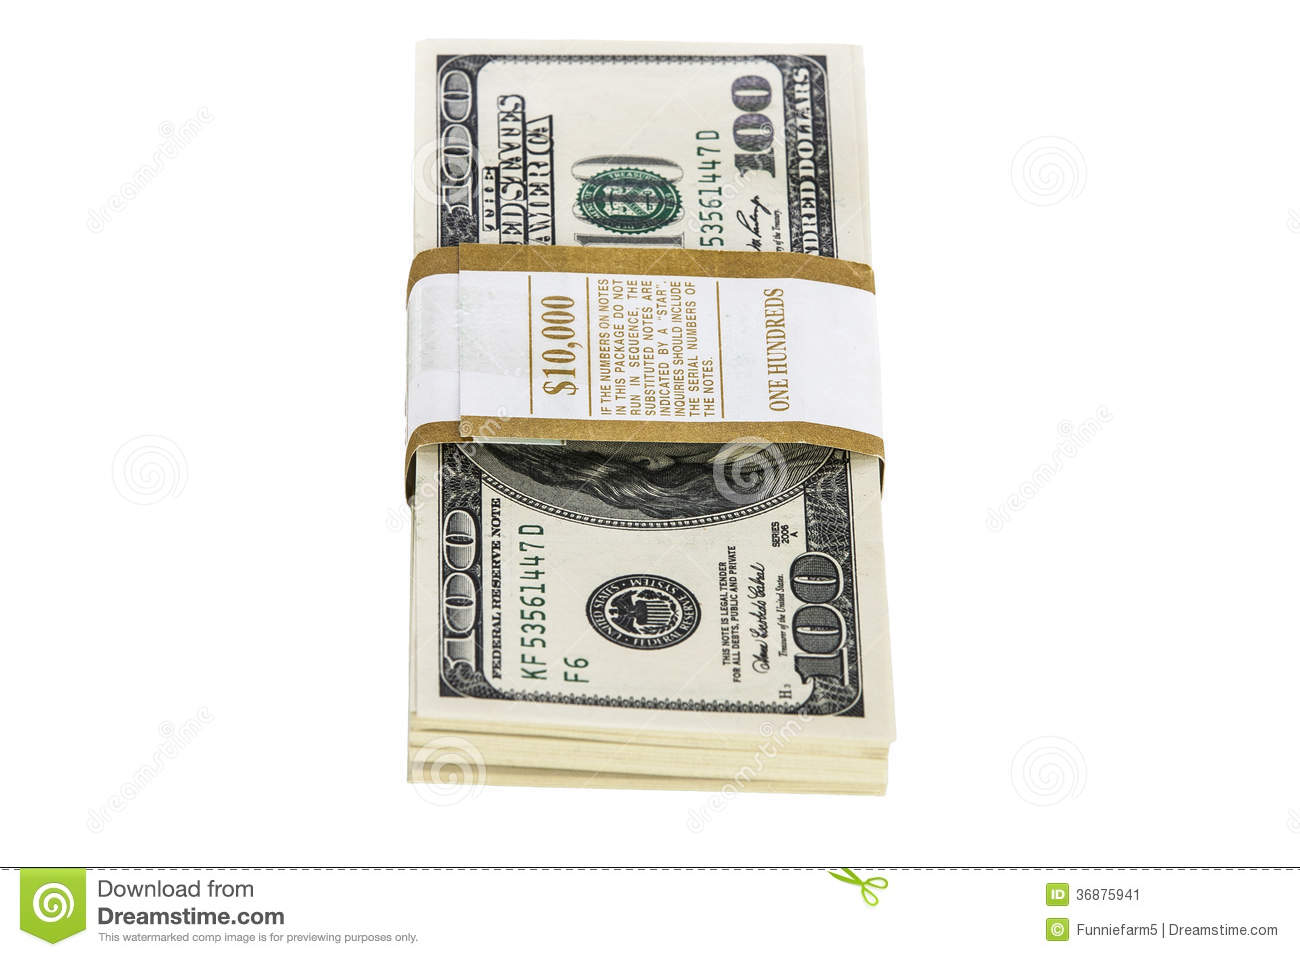 Download Lle Pile Di 100 Banconote In Dollari Isolate Su Bianco Immagine Stock - Immagine di commercio, valuta: 36875941